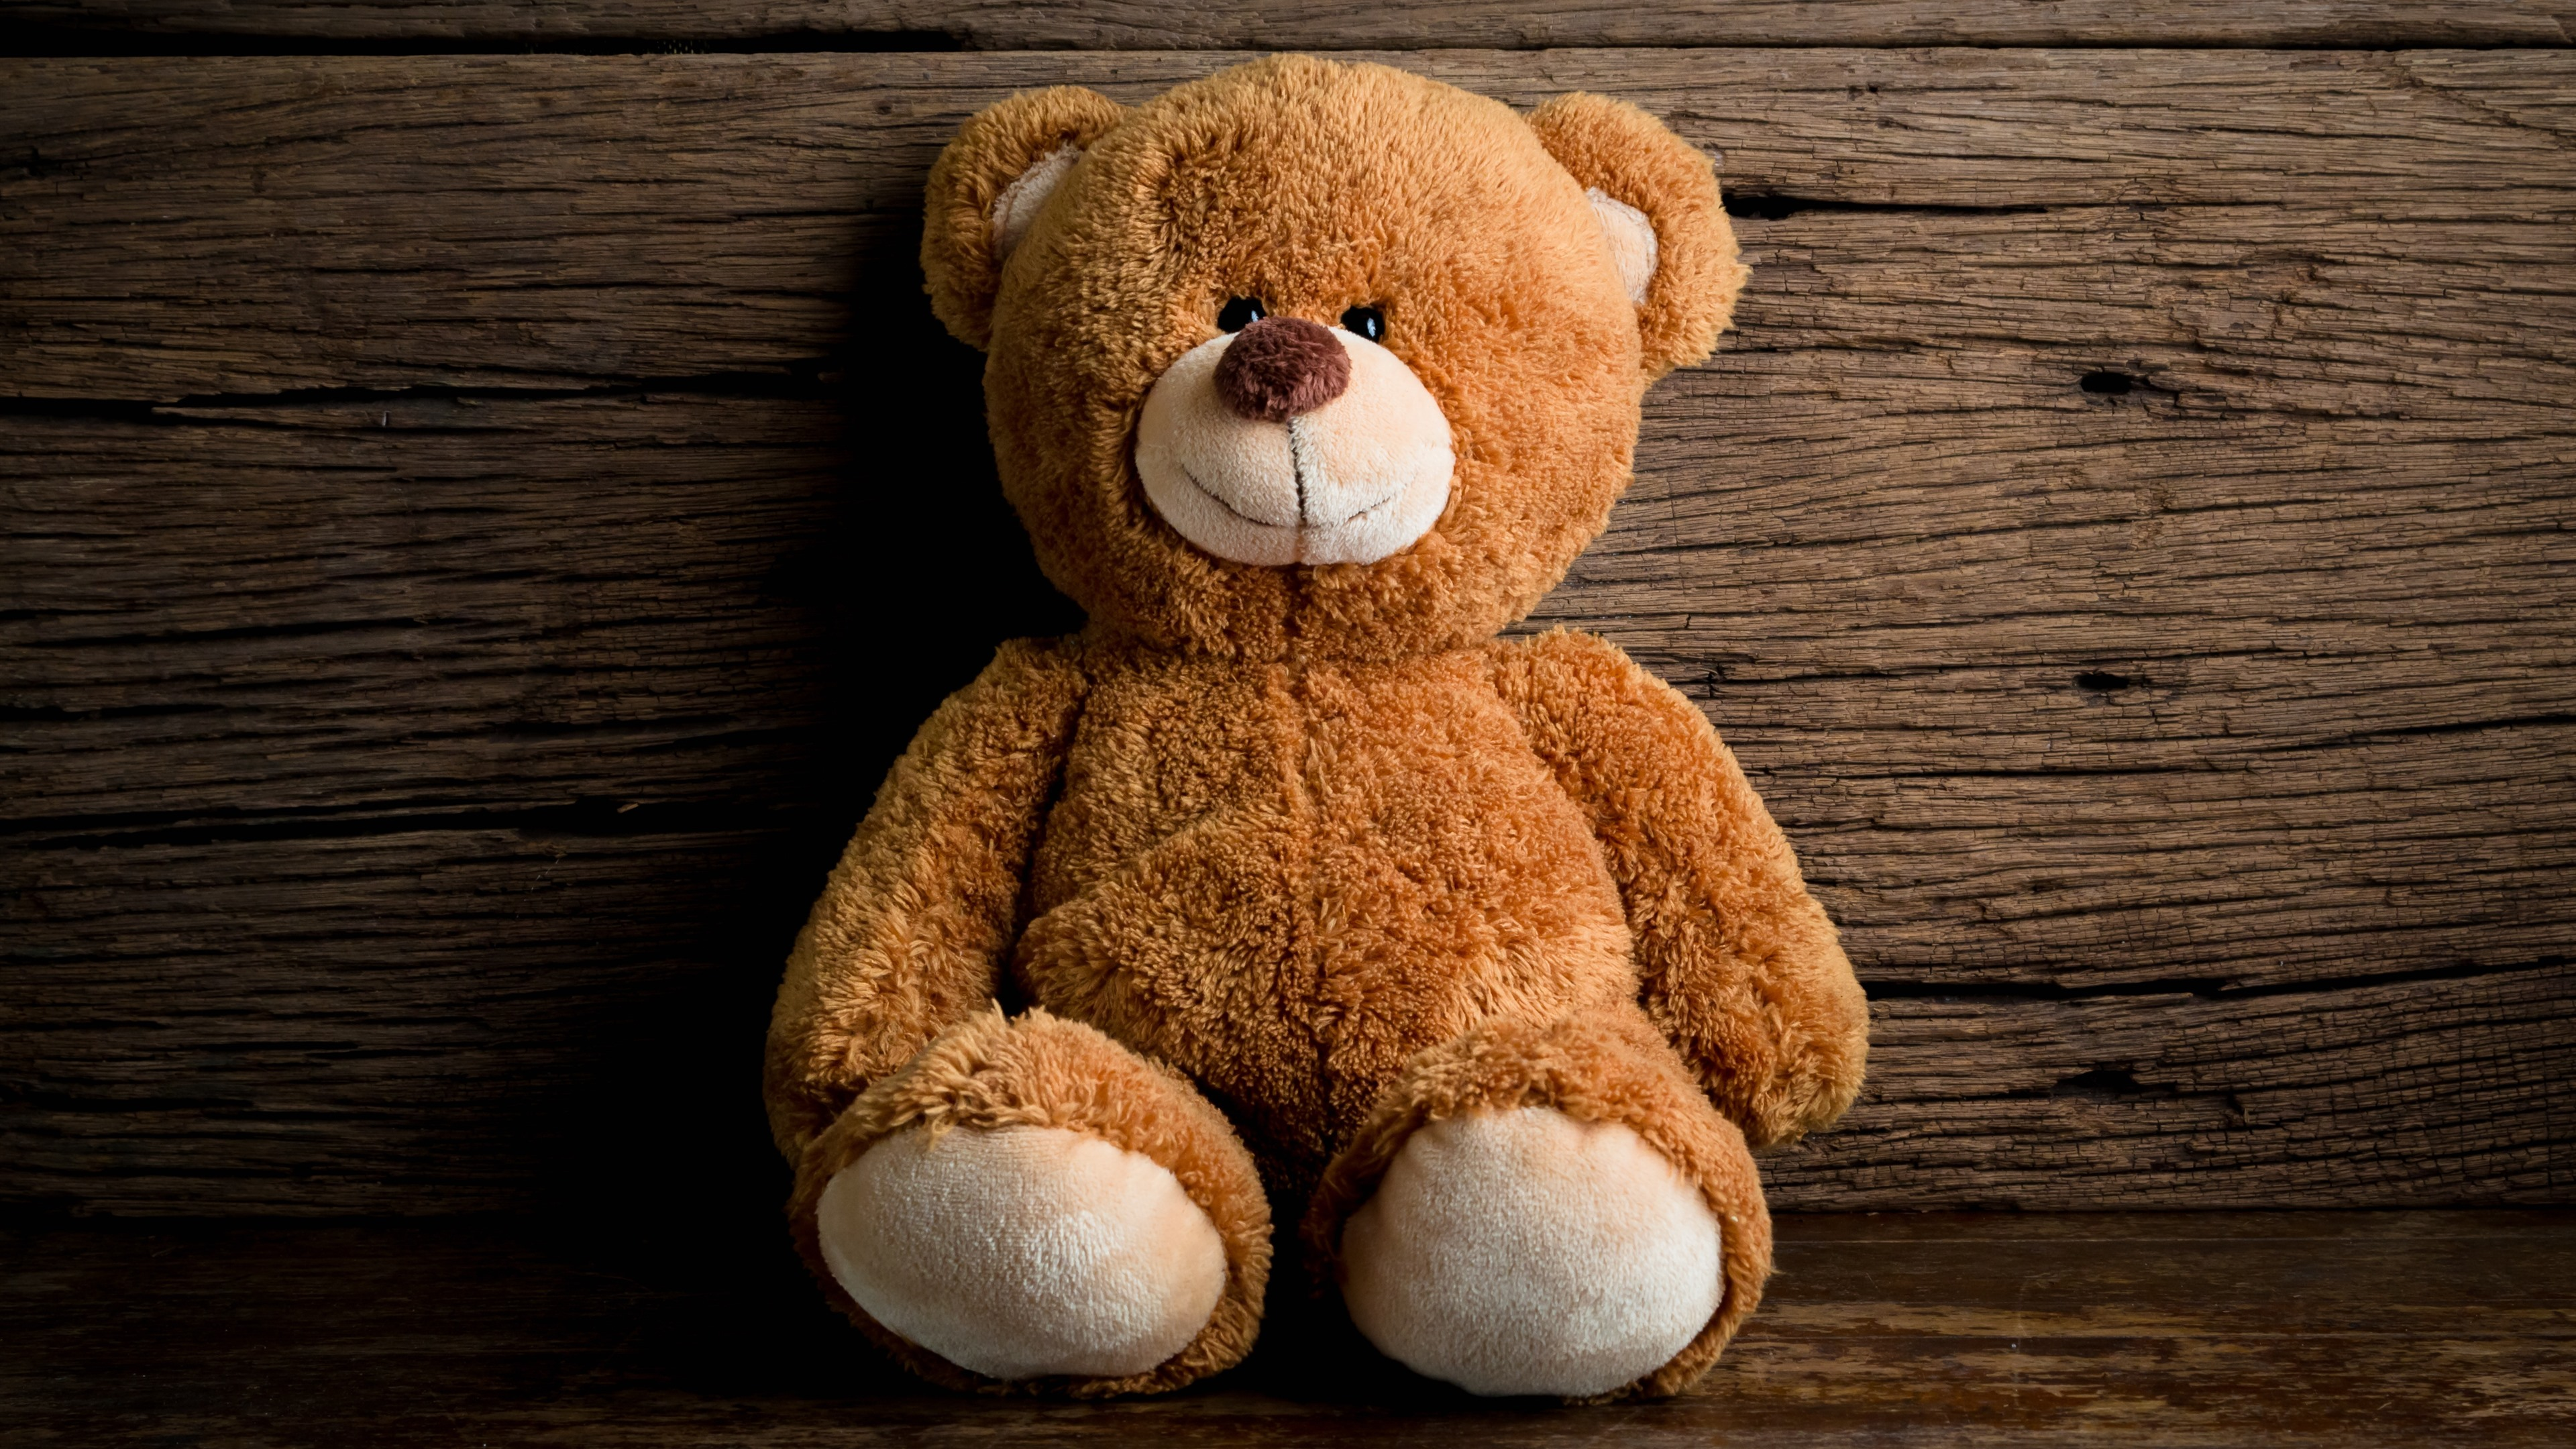 Cute Japanese Wallpaper Iphone Wallpaper Cute Teddy Bear Toy 5120x2880 Uhd 5k Picture Image